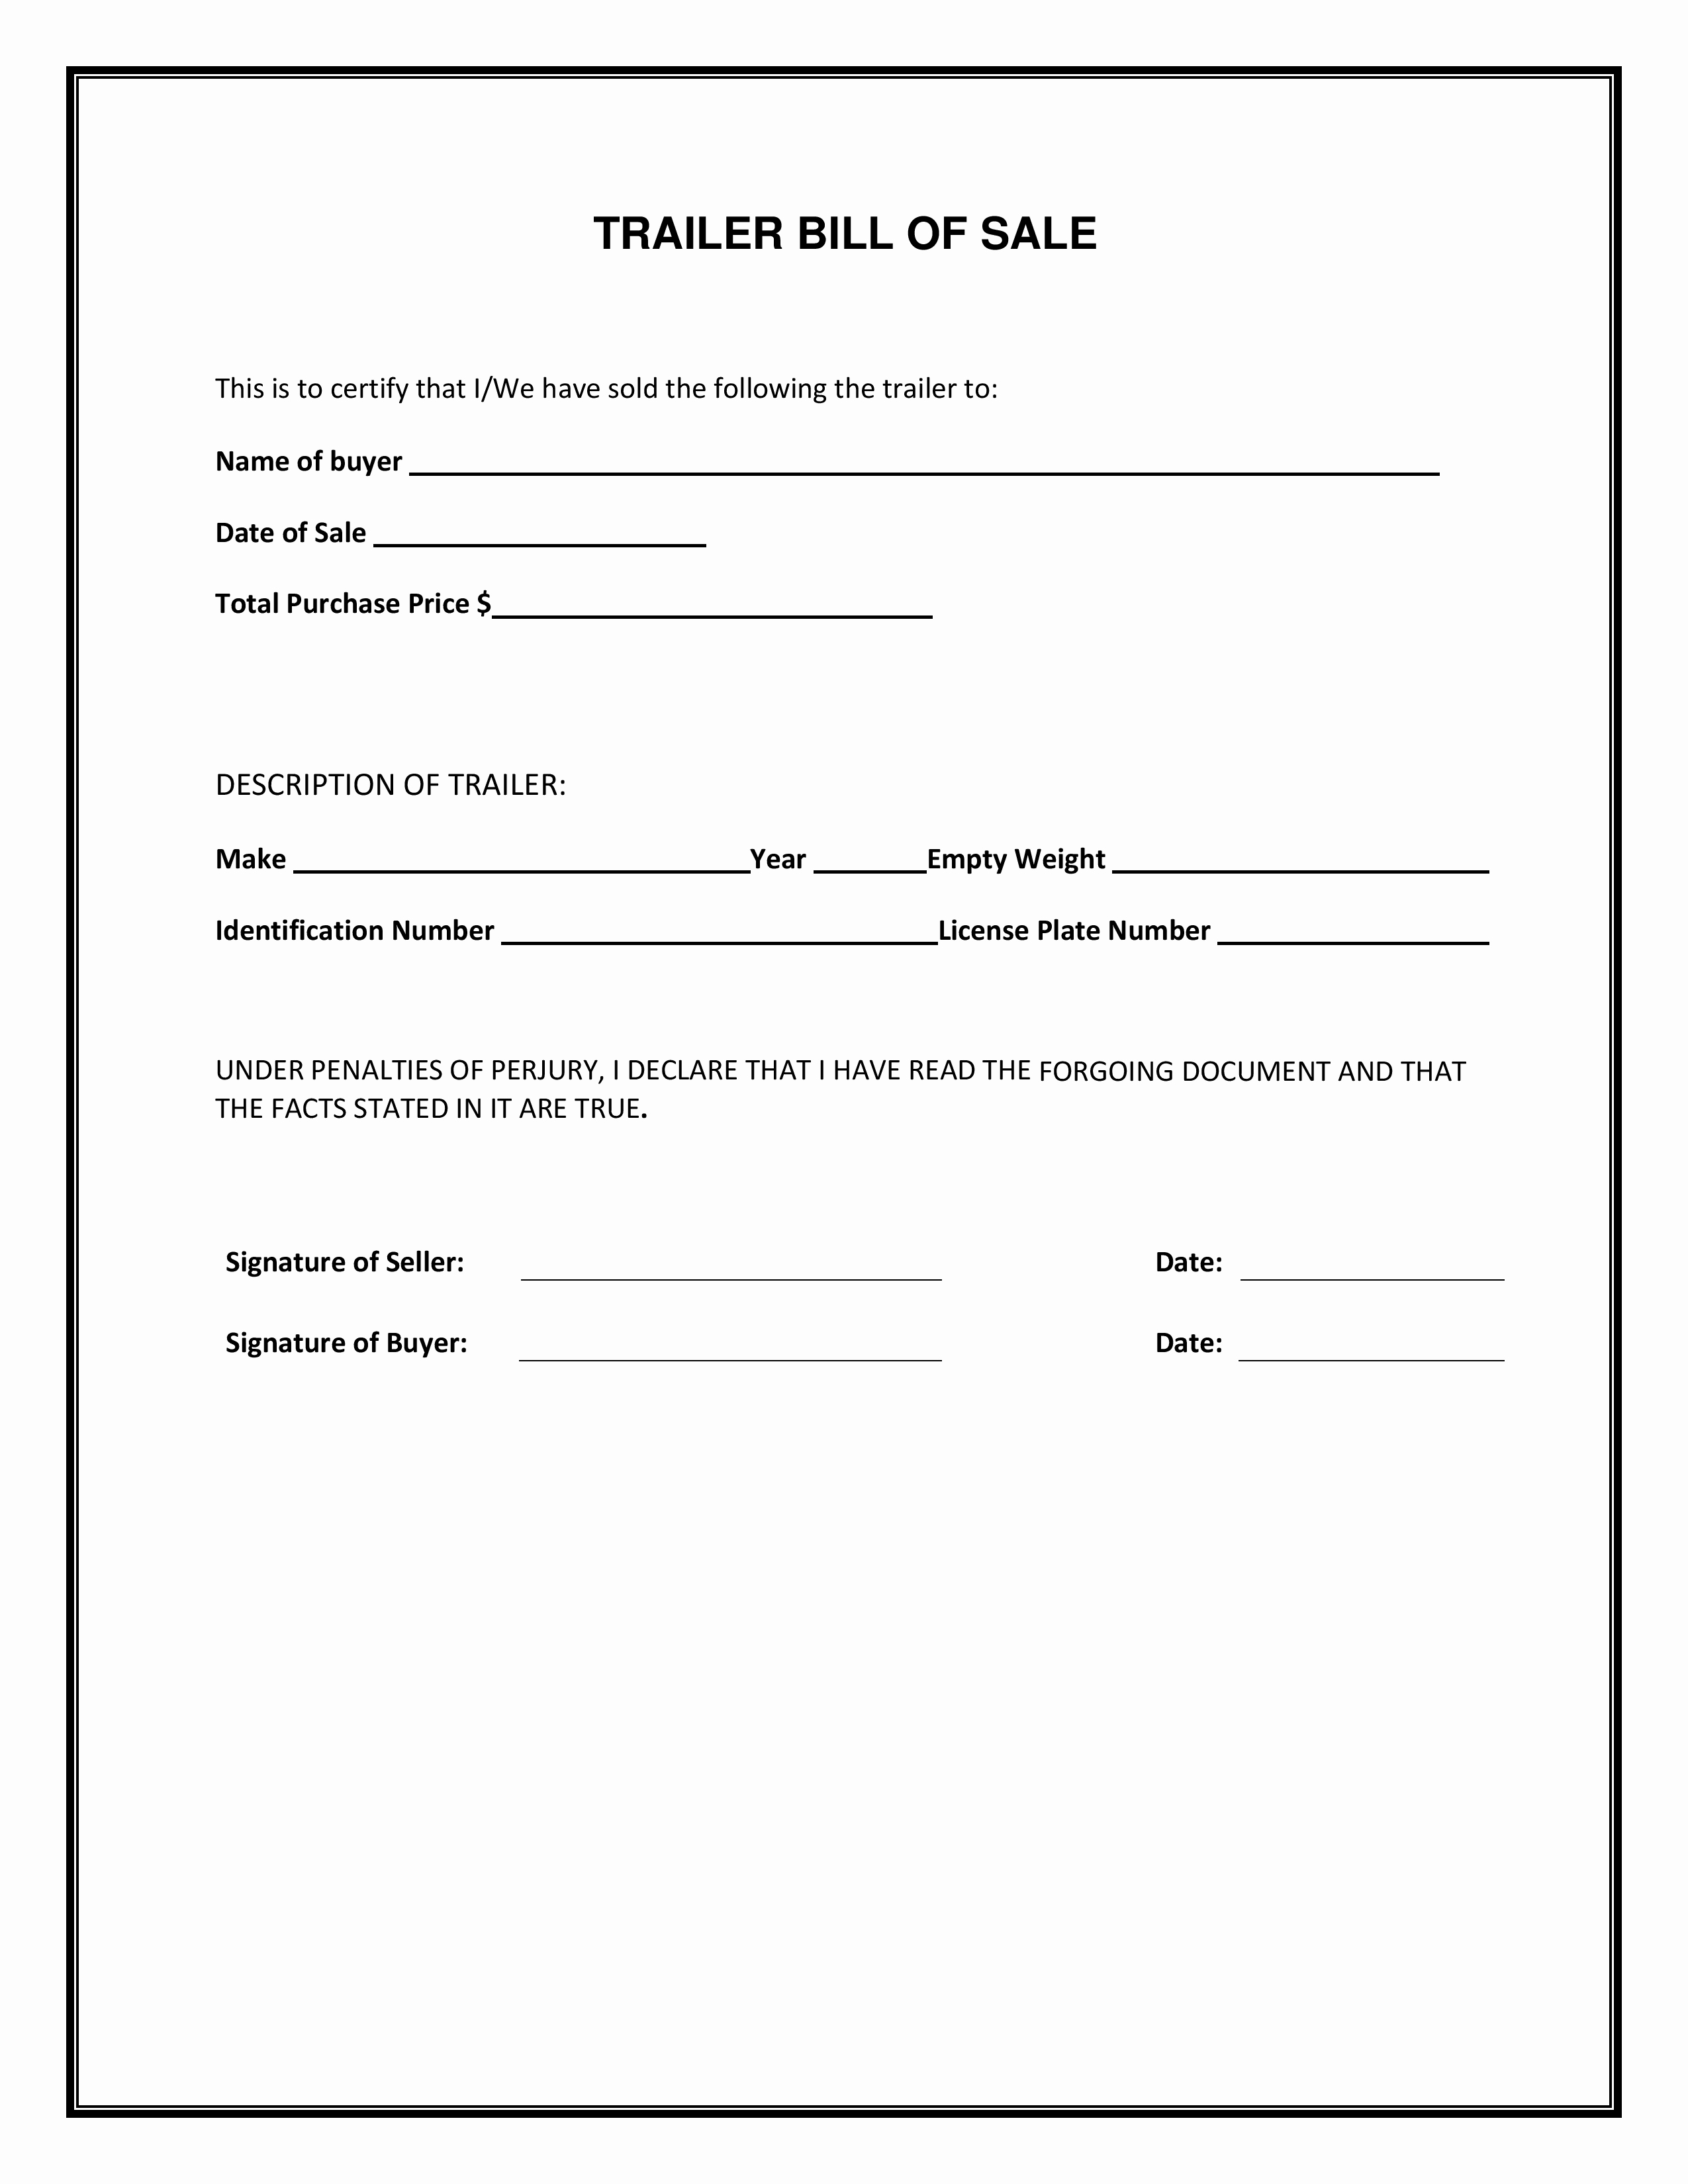 Bill Of Sale Printable Version Beautiful Free Bill Sale forms Pdf Template form Download Trailer